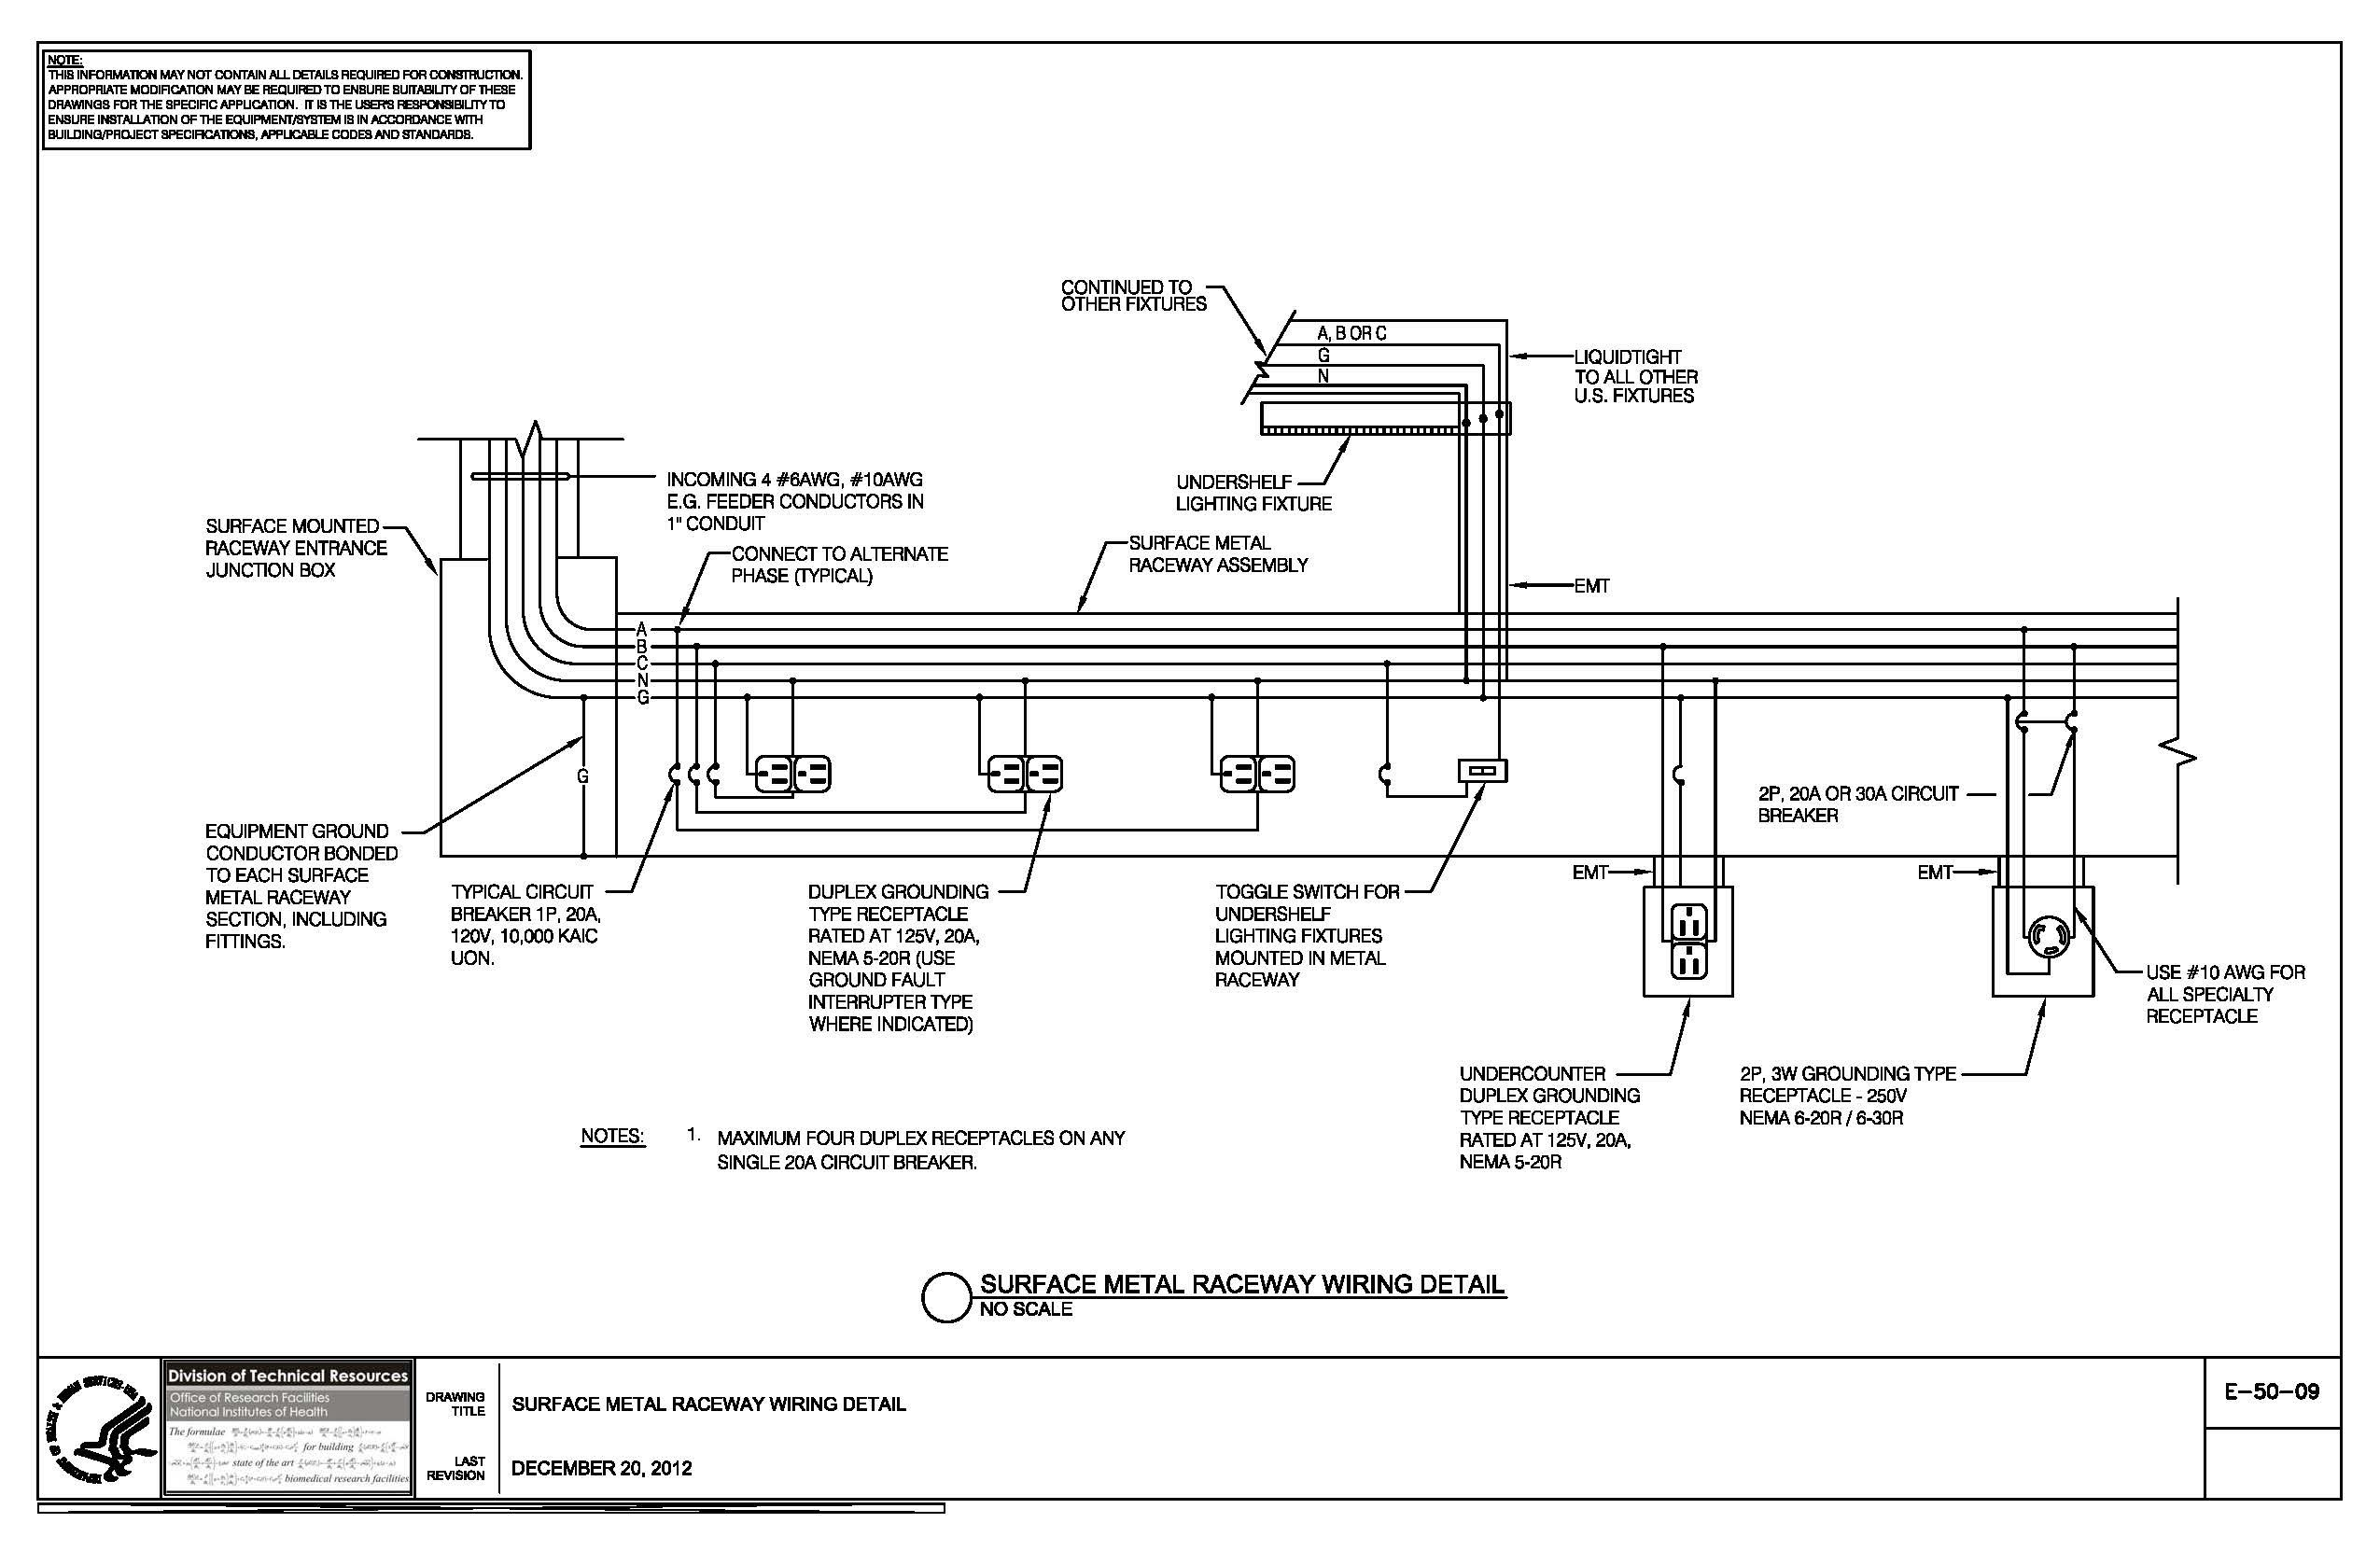 swimming pool wiring diagram Download-swimming pool wiring diagram Collection of E 50 09 Surface Metal Raceway Wiring Detail NIH DOWNLOAD Wiring Diagram Detail Name swimming pool 4-j